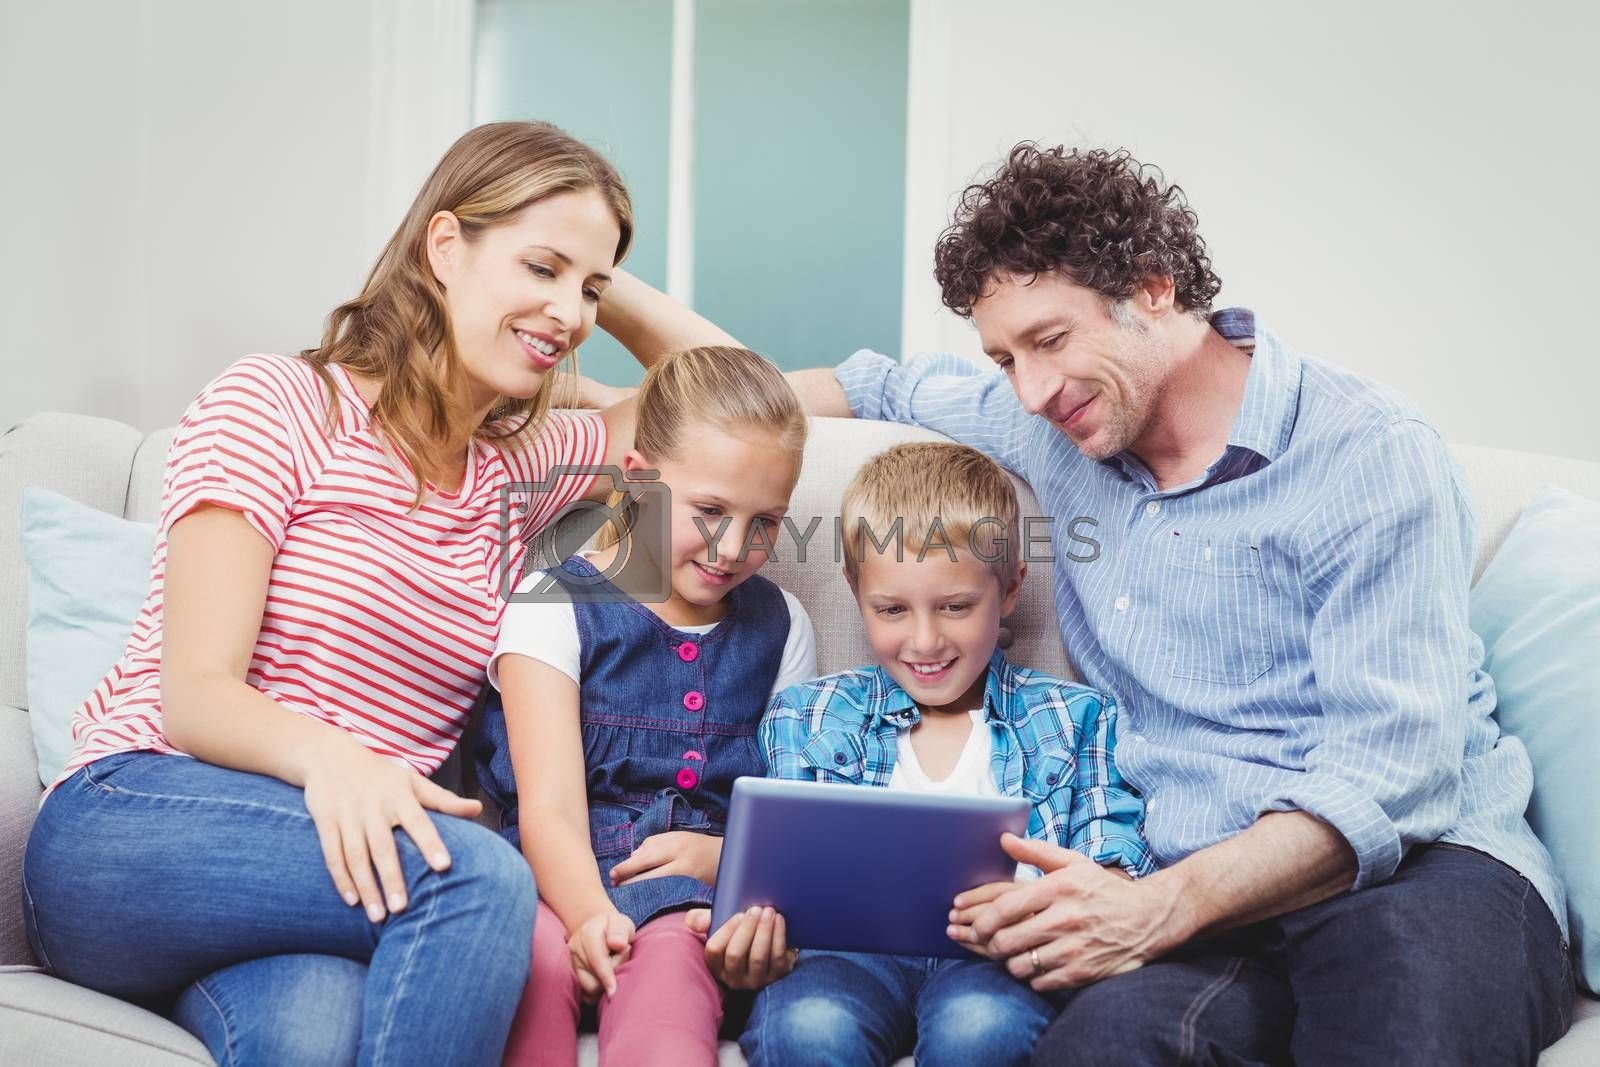 Family smiling and looking in digital tablet while sitting on sofa at home